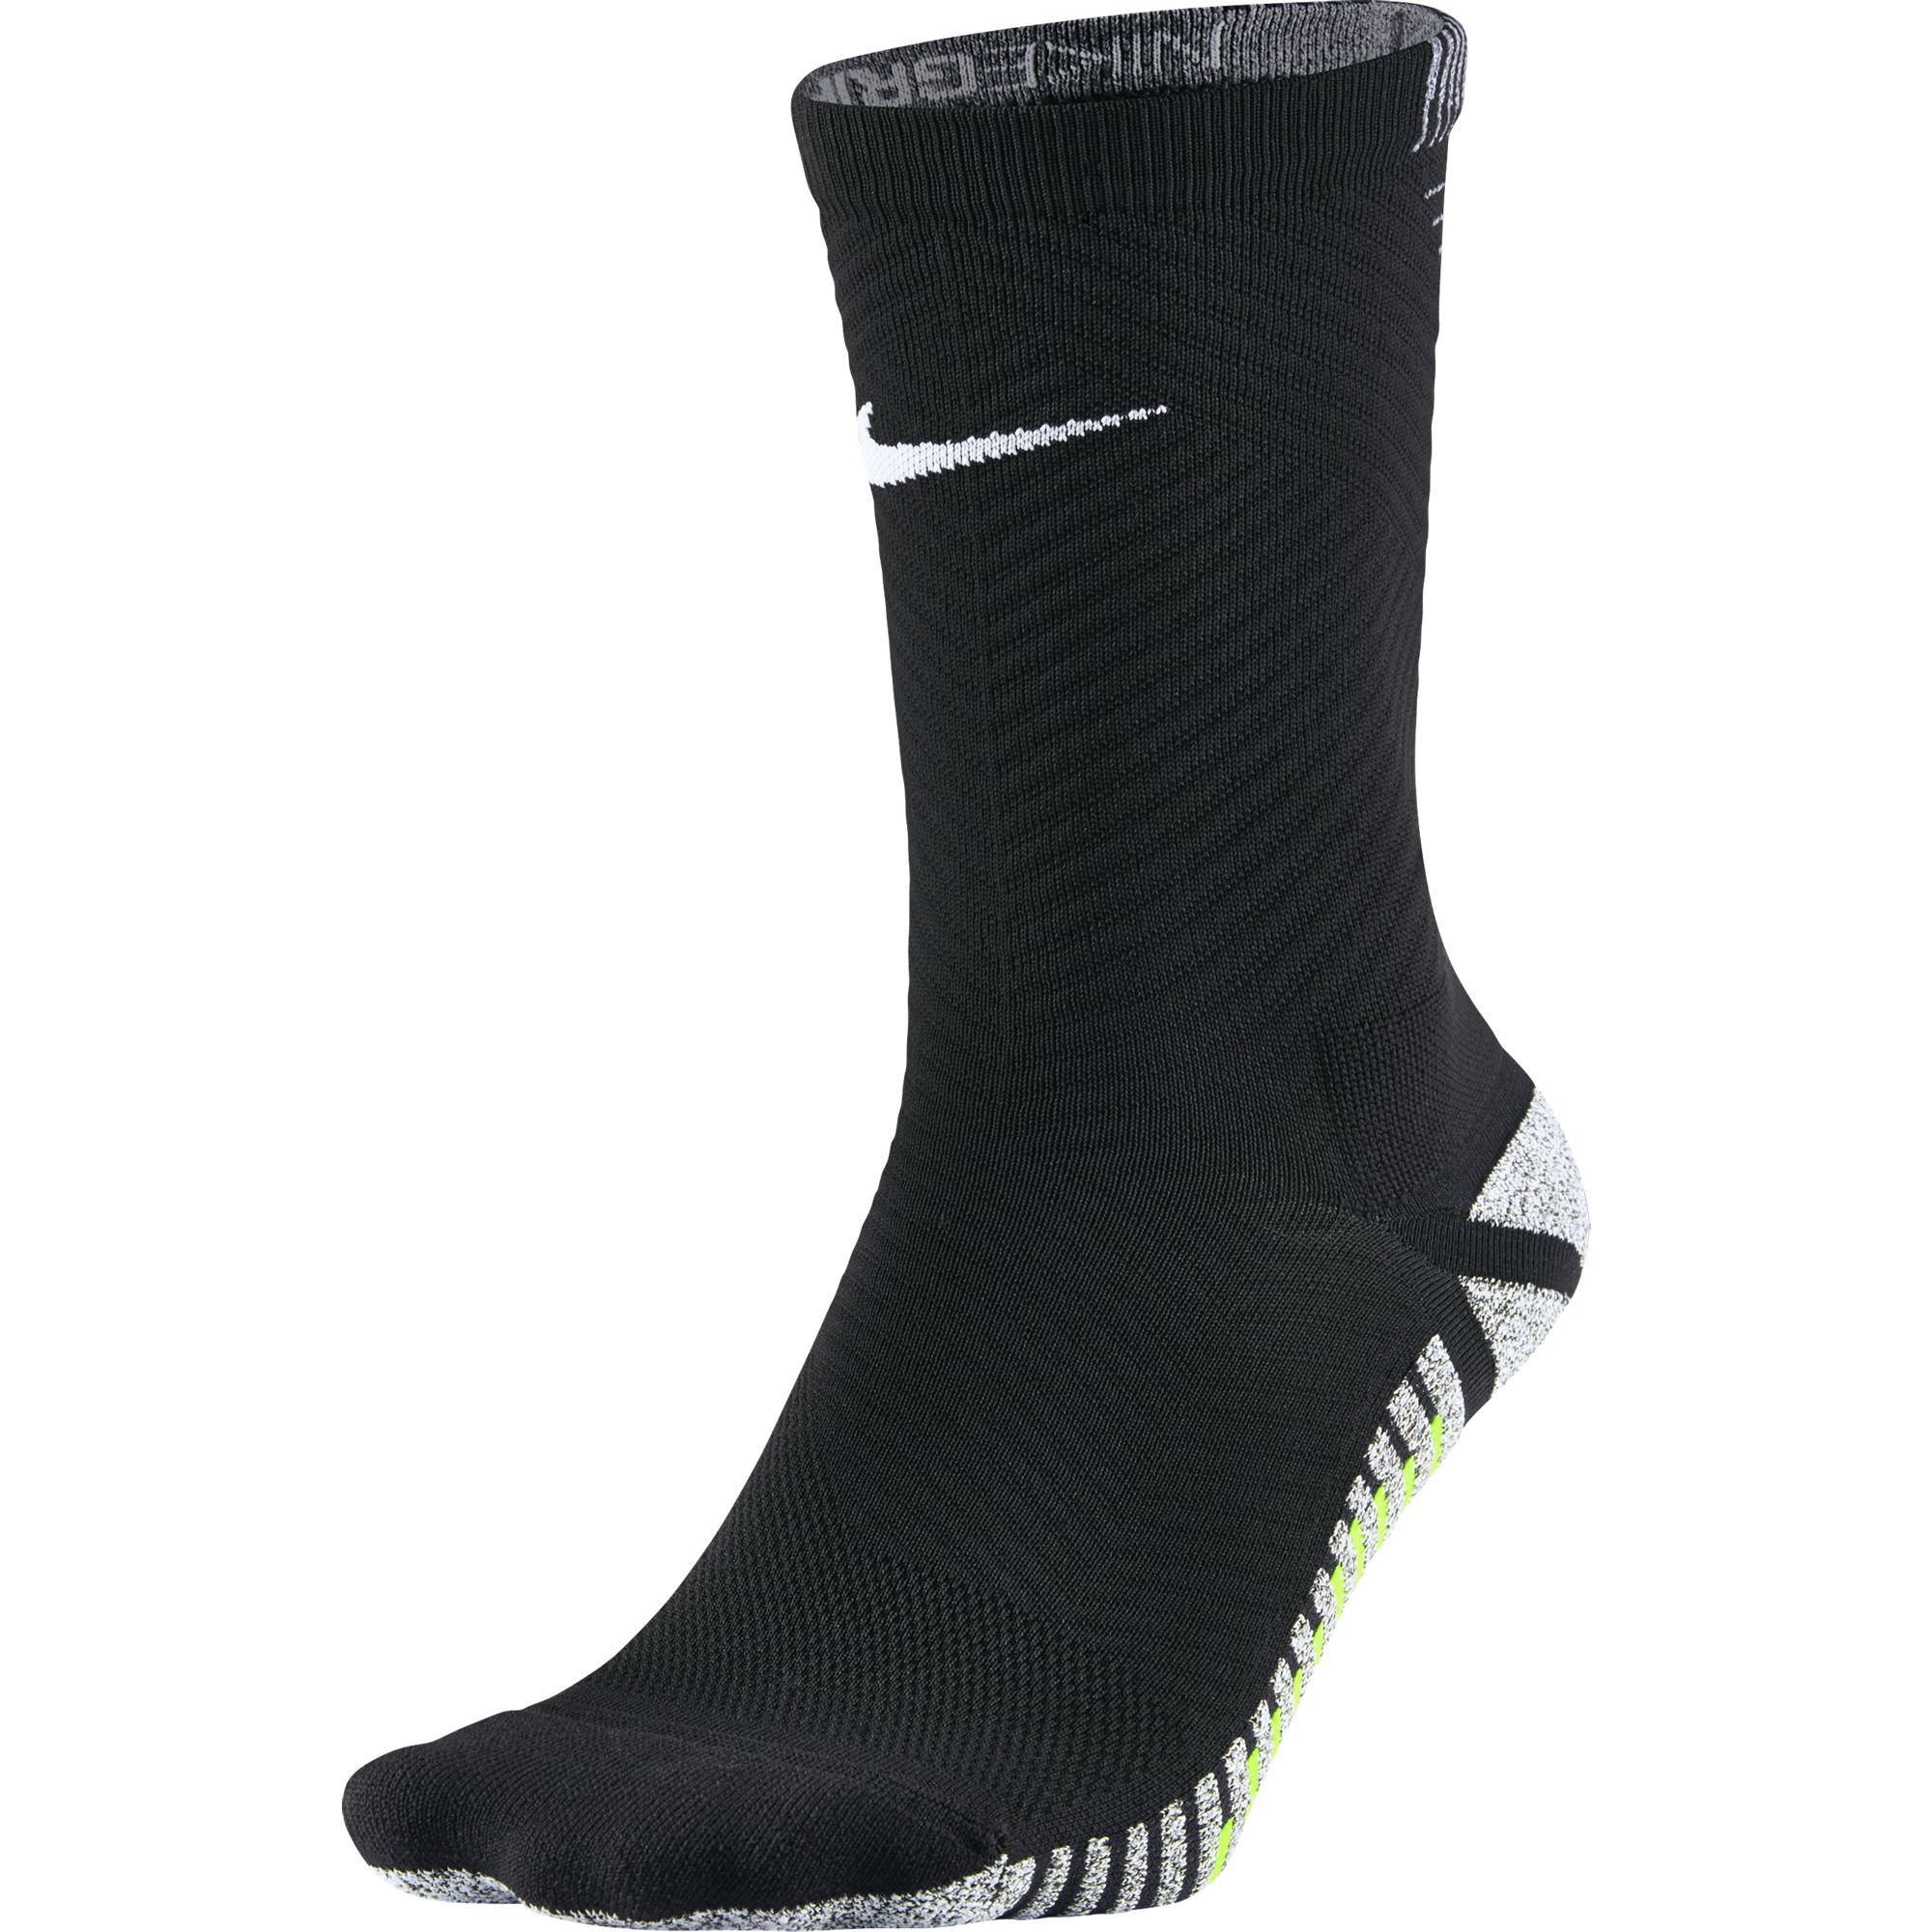 NikeGrip Strike Light Crew Socks